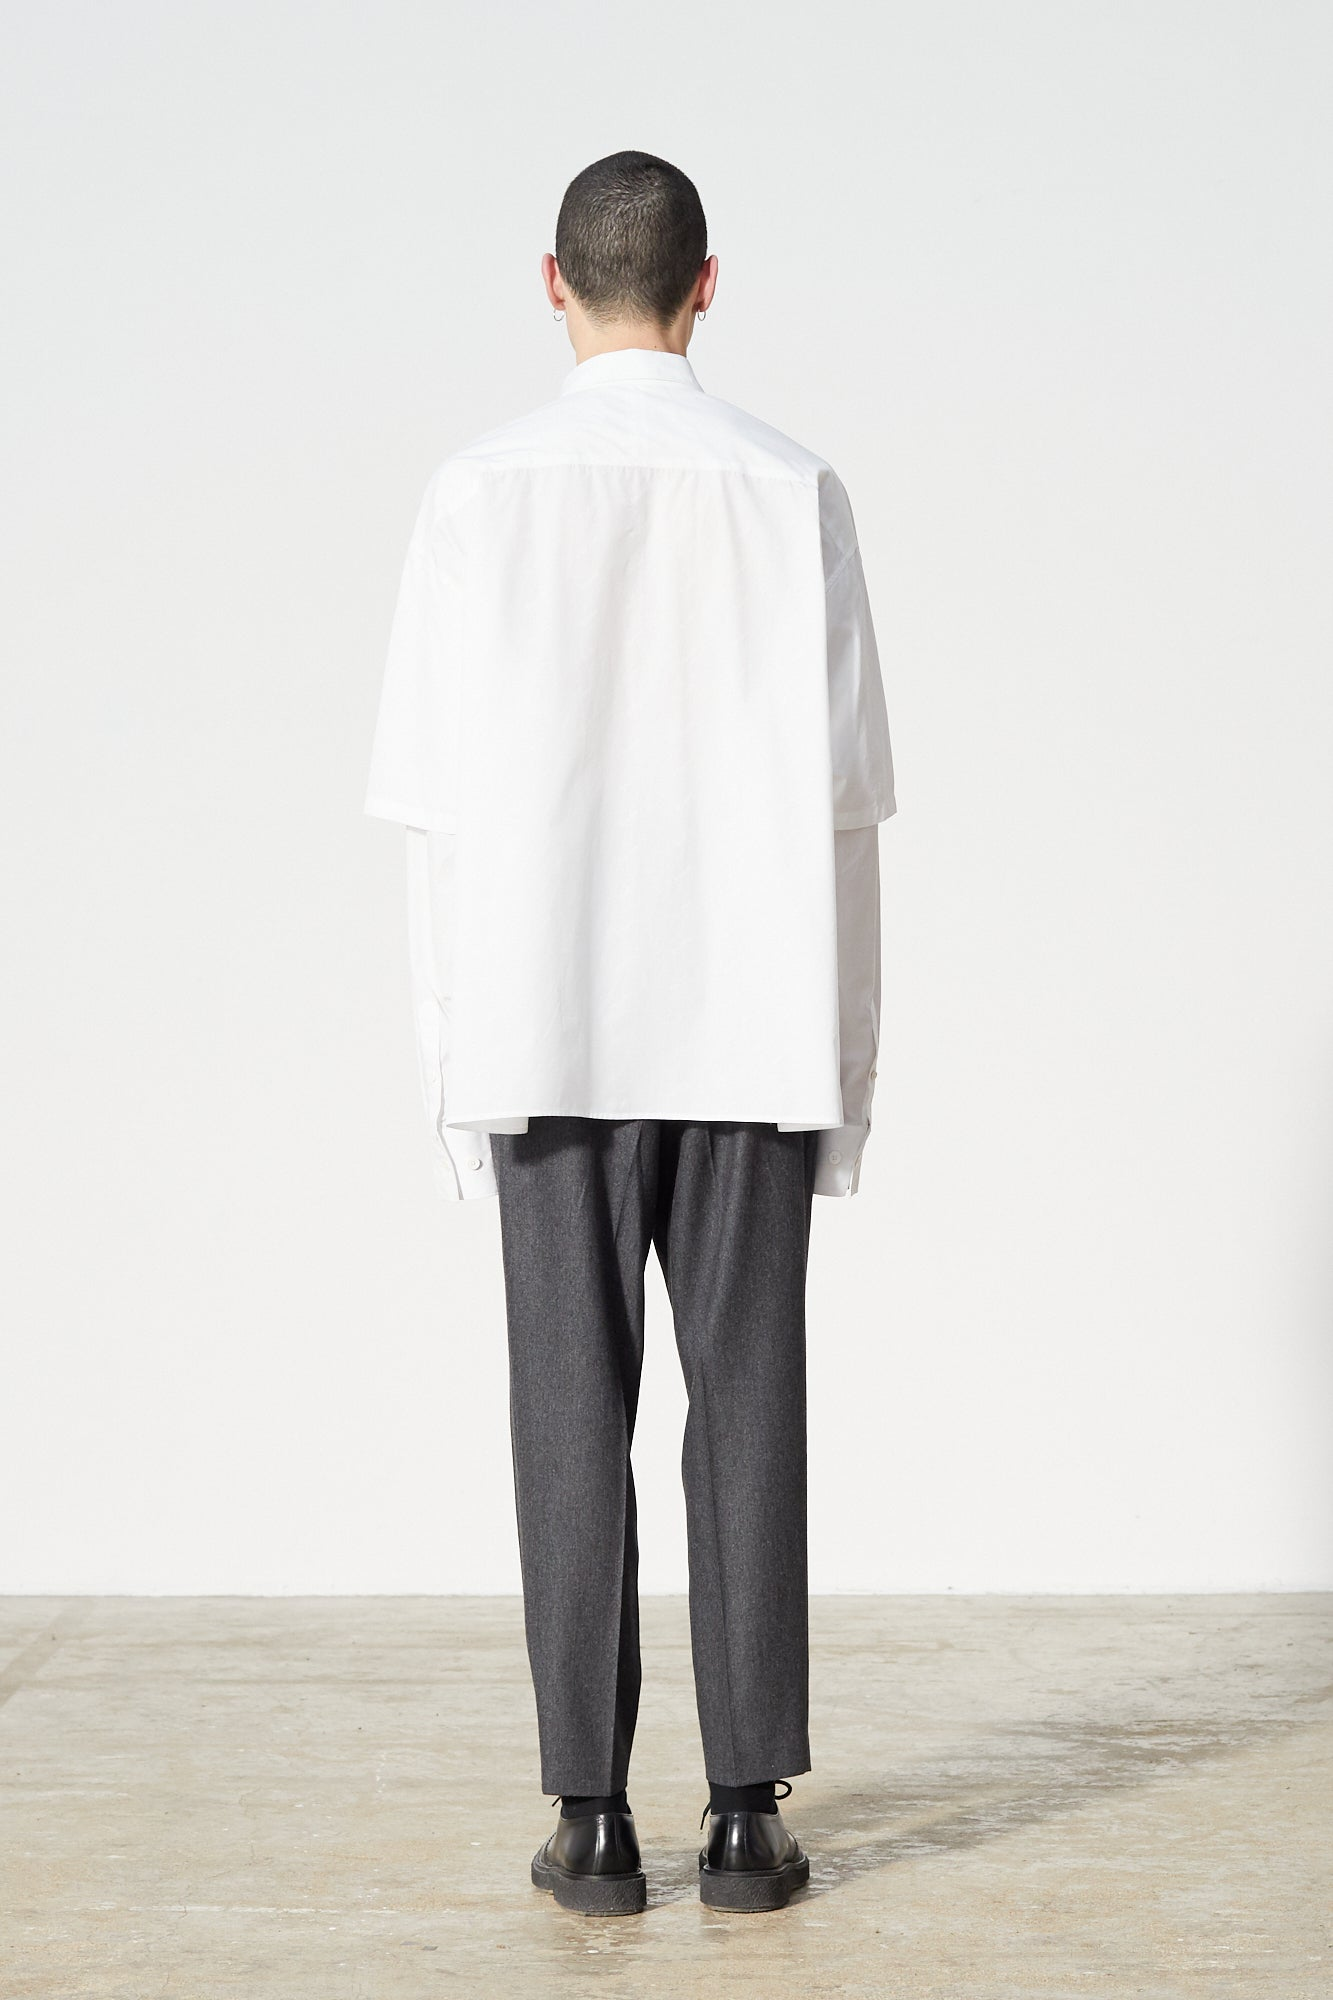 Études Iron Monogram White Shirt 2